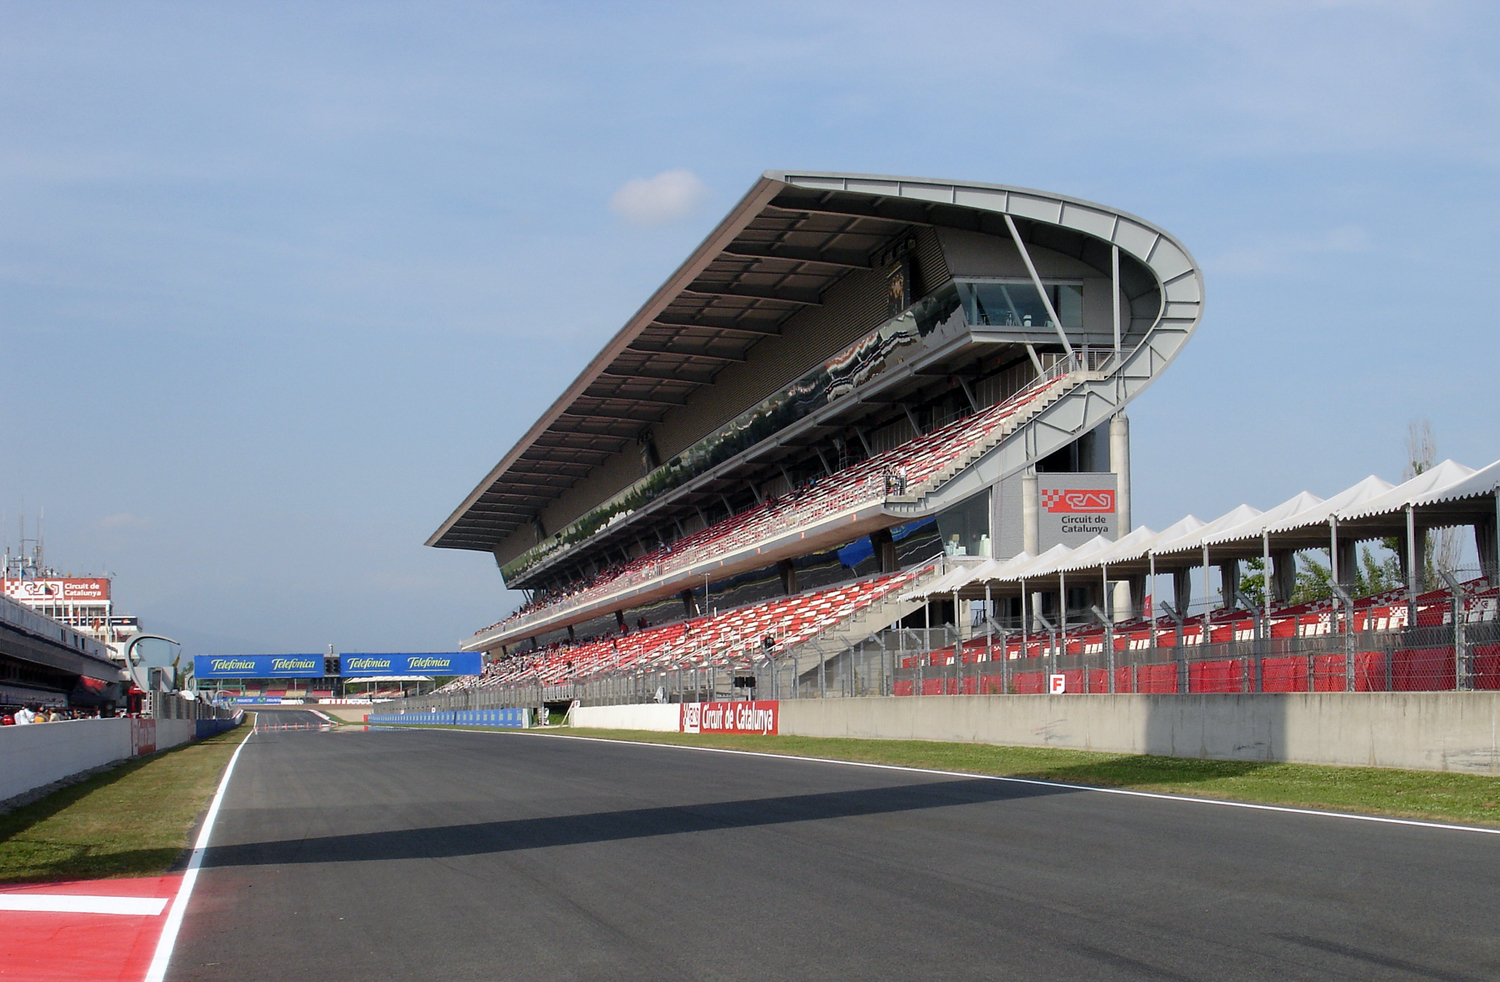 https://upload.wikimedia.org/wikipedia/commons/3/3c/F1_Circuit_de_Catalunya_-_Tribuna.jpg